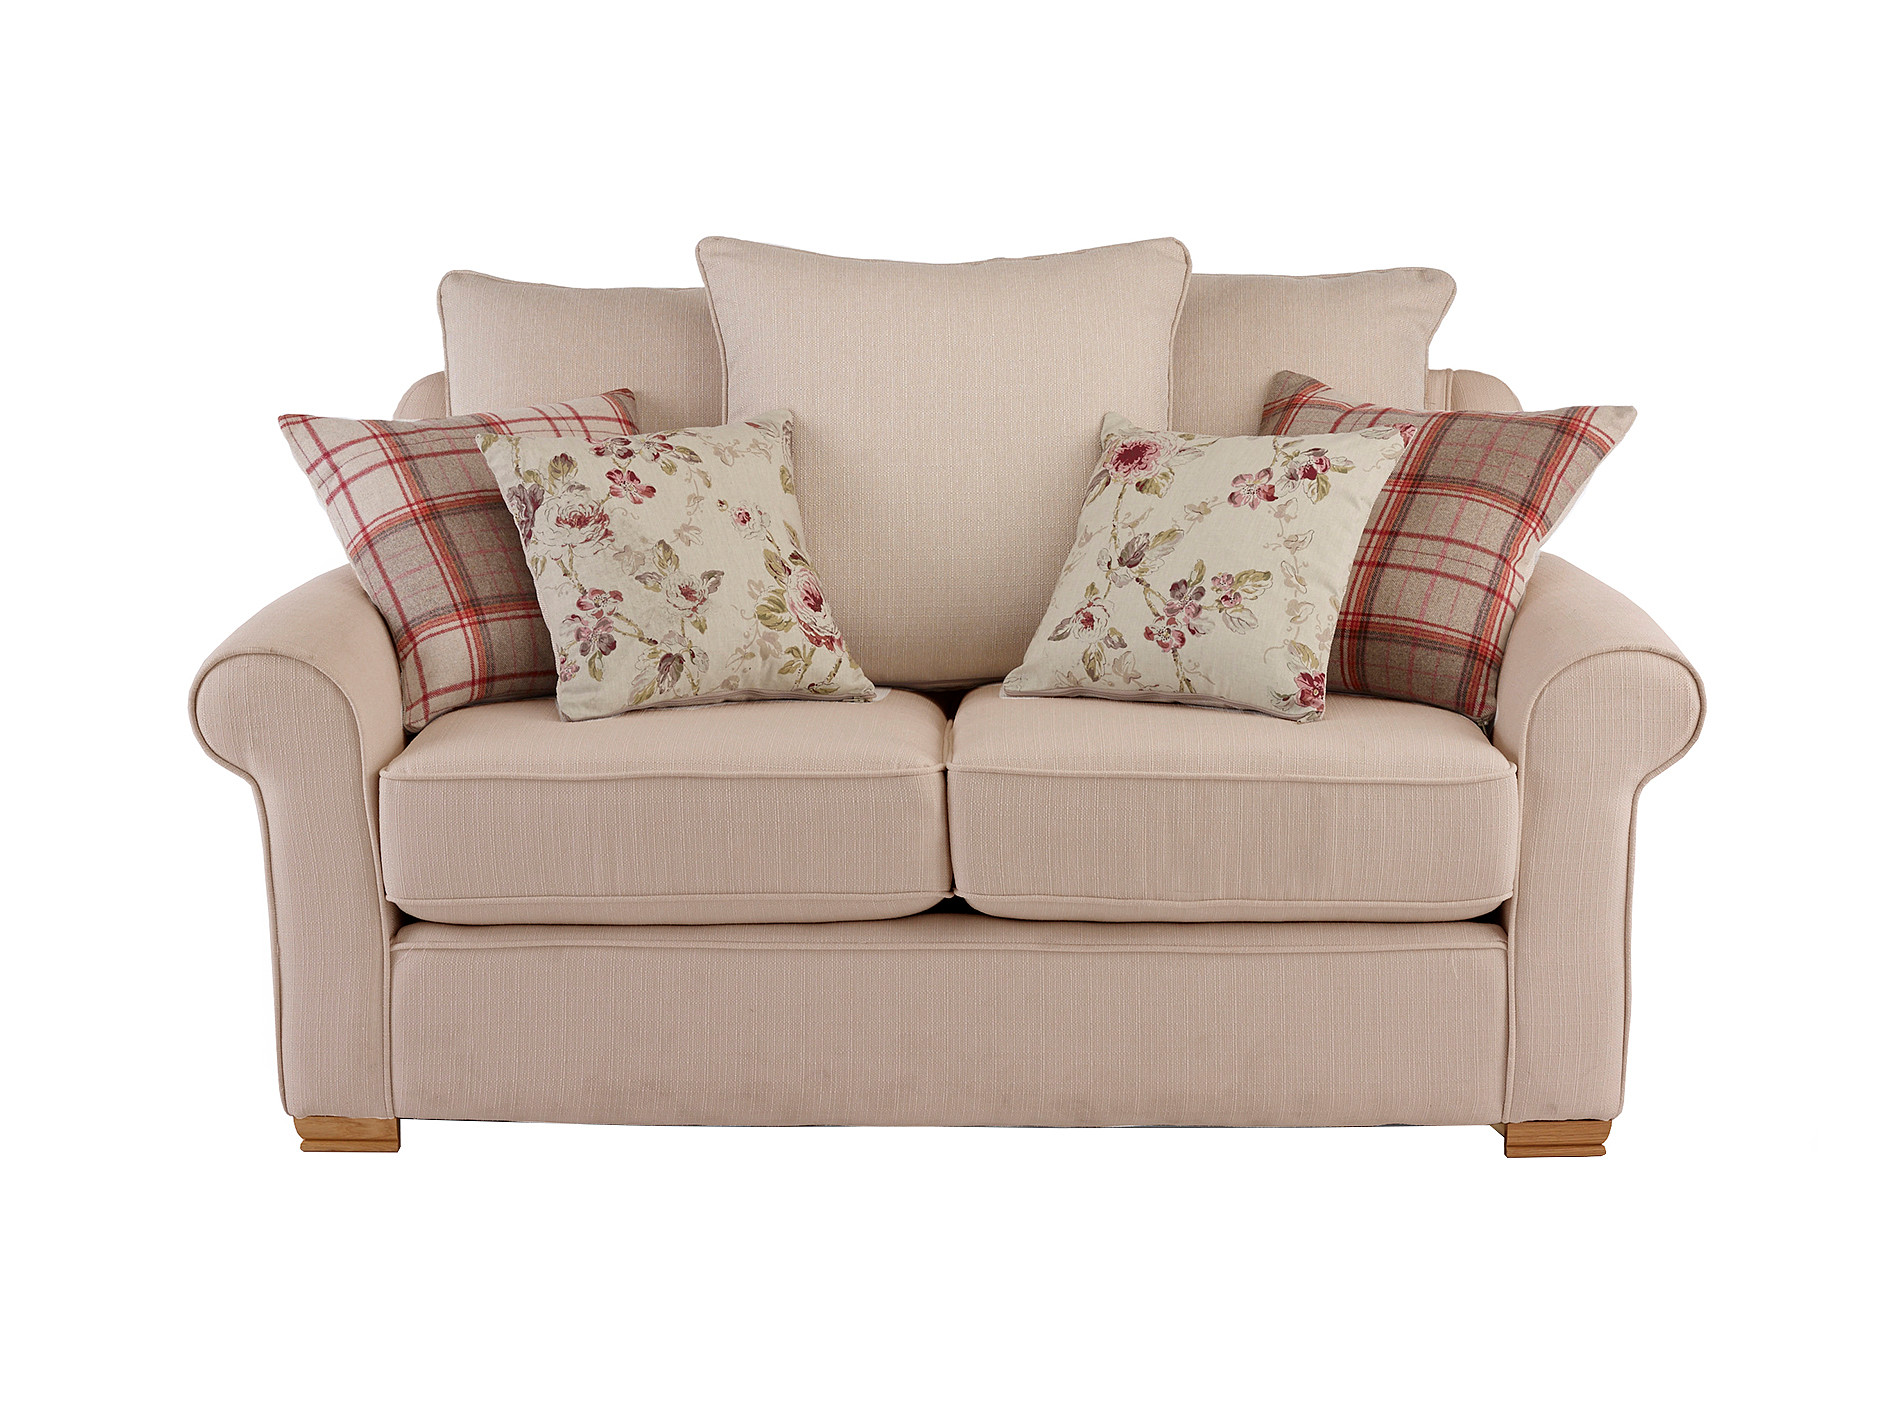 Hexham Carrie Medium Sofa With Pillow Back In Beige With